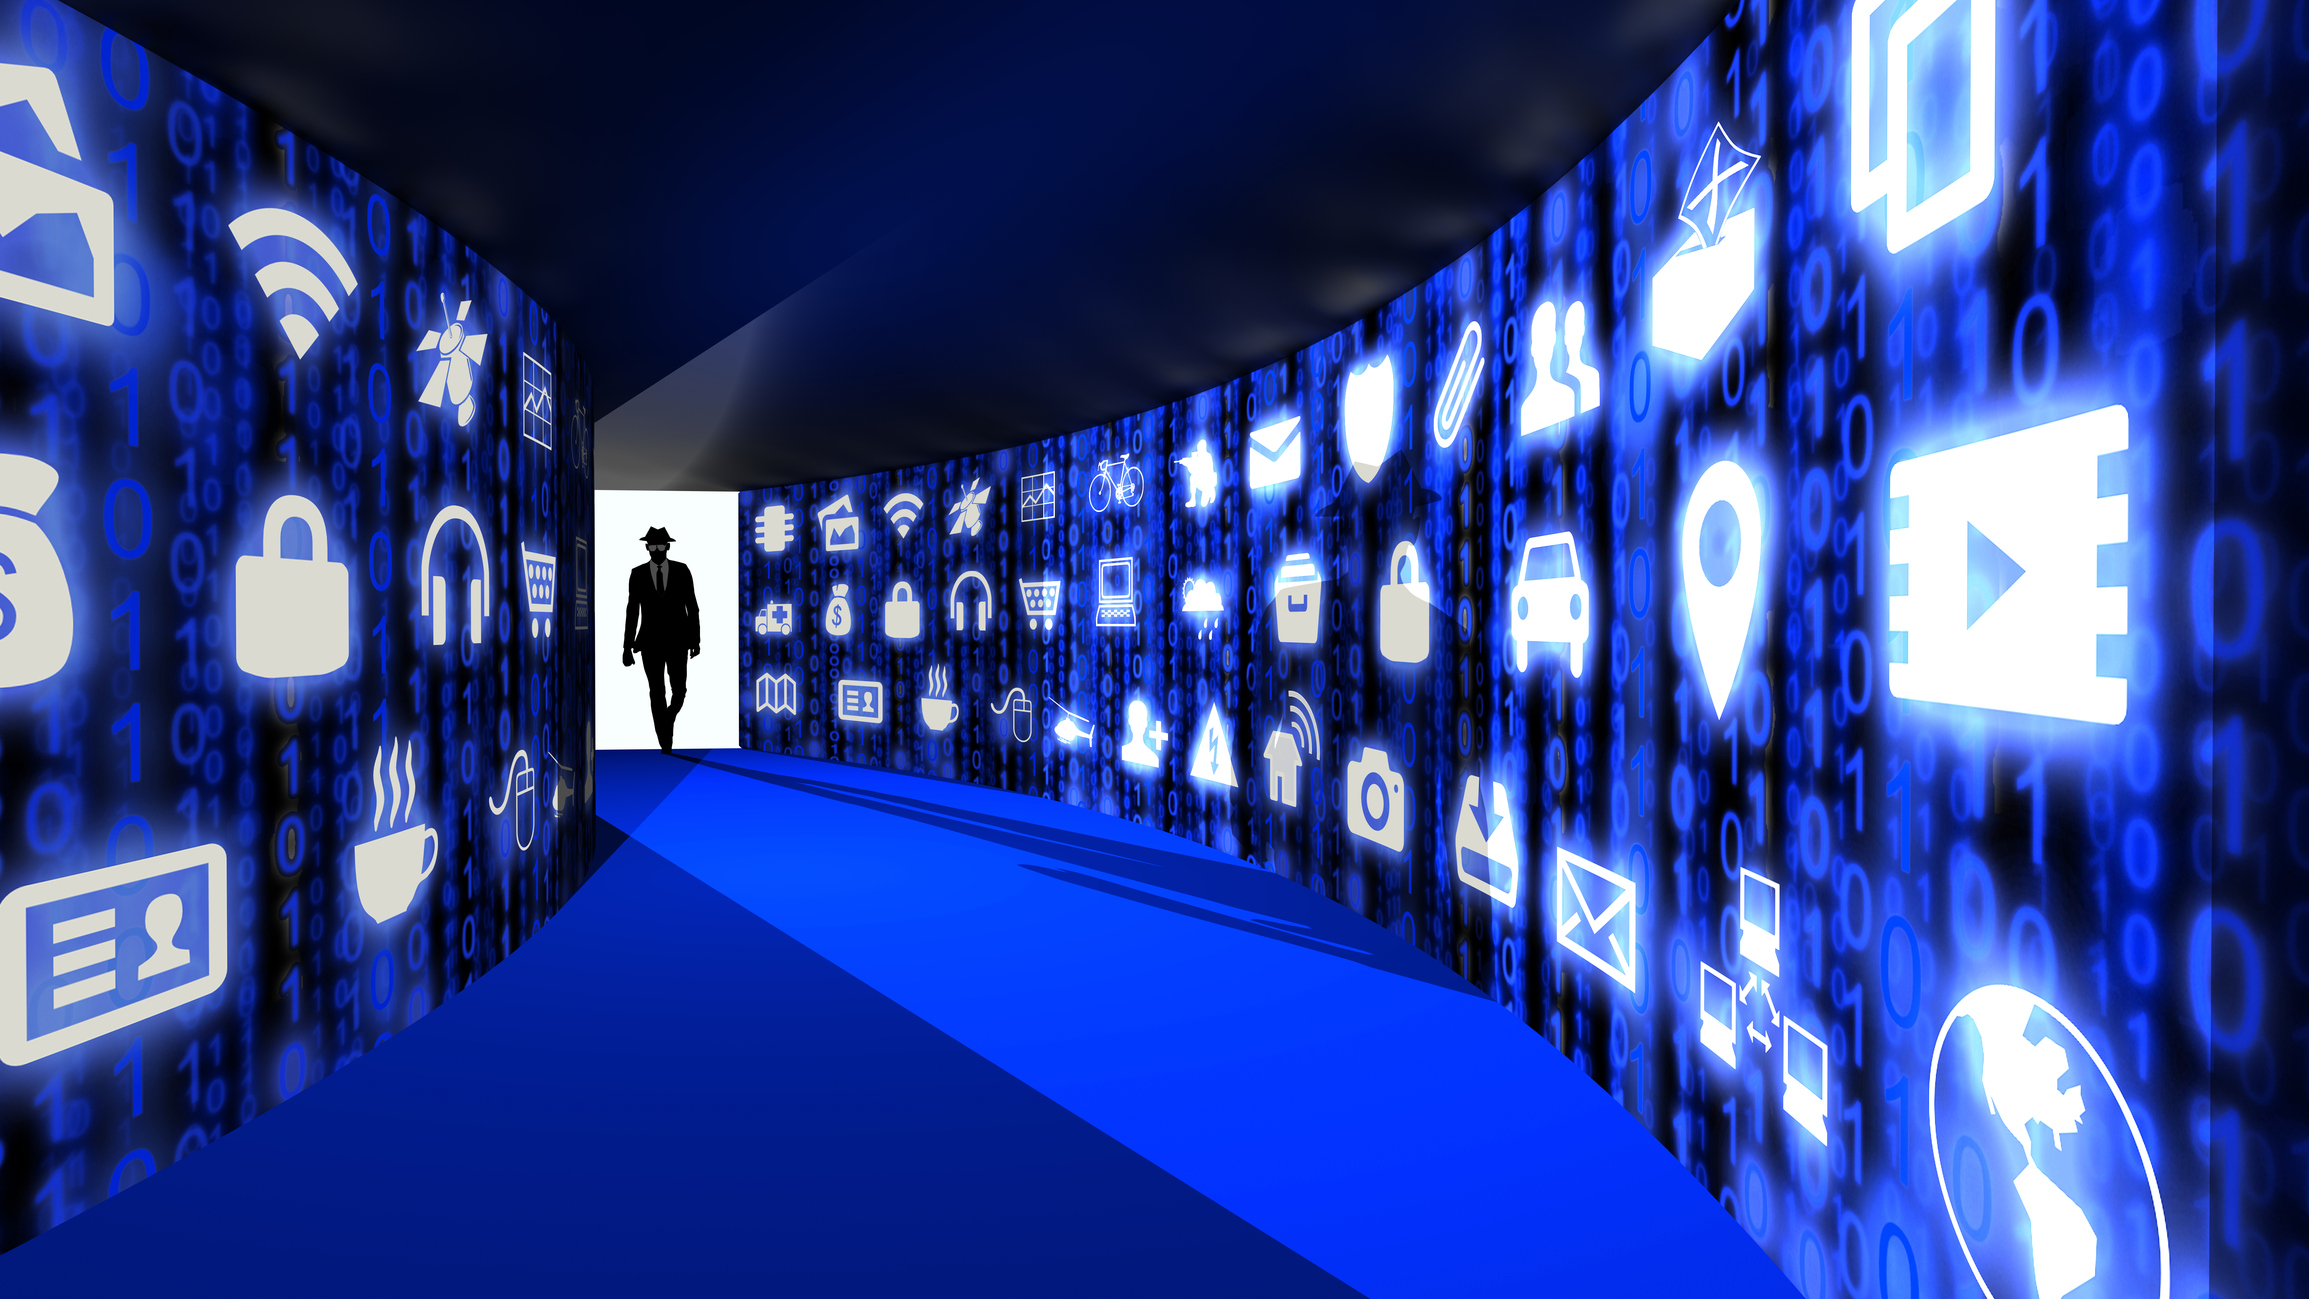 A silhouette of a hacker with a black hat in a suit enters a hallway with walls textured with blue internet of things icons 3D illustration cybersecurity concept